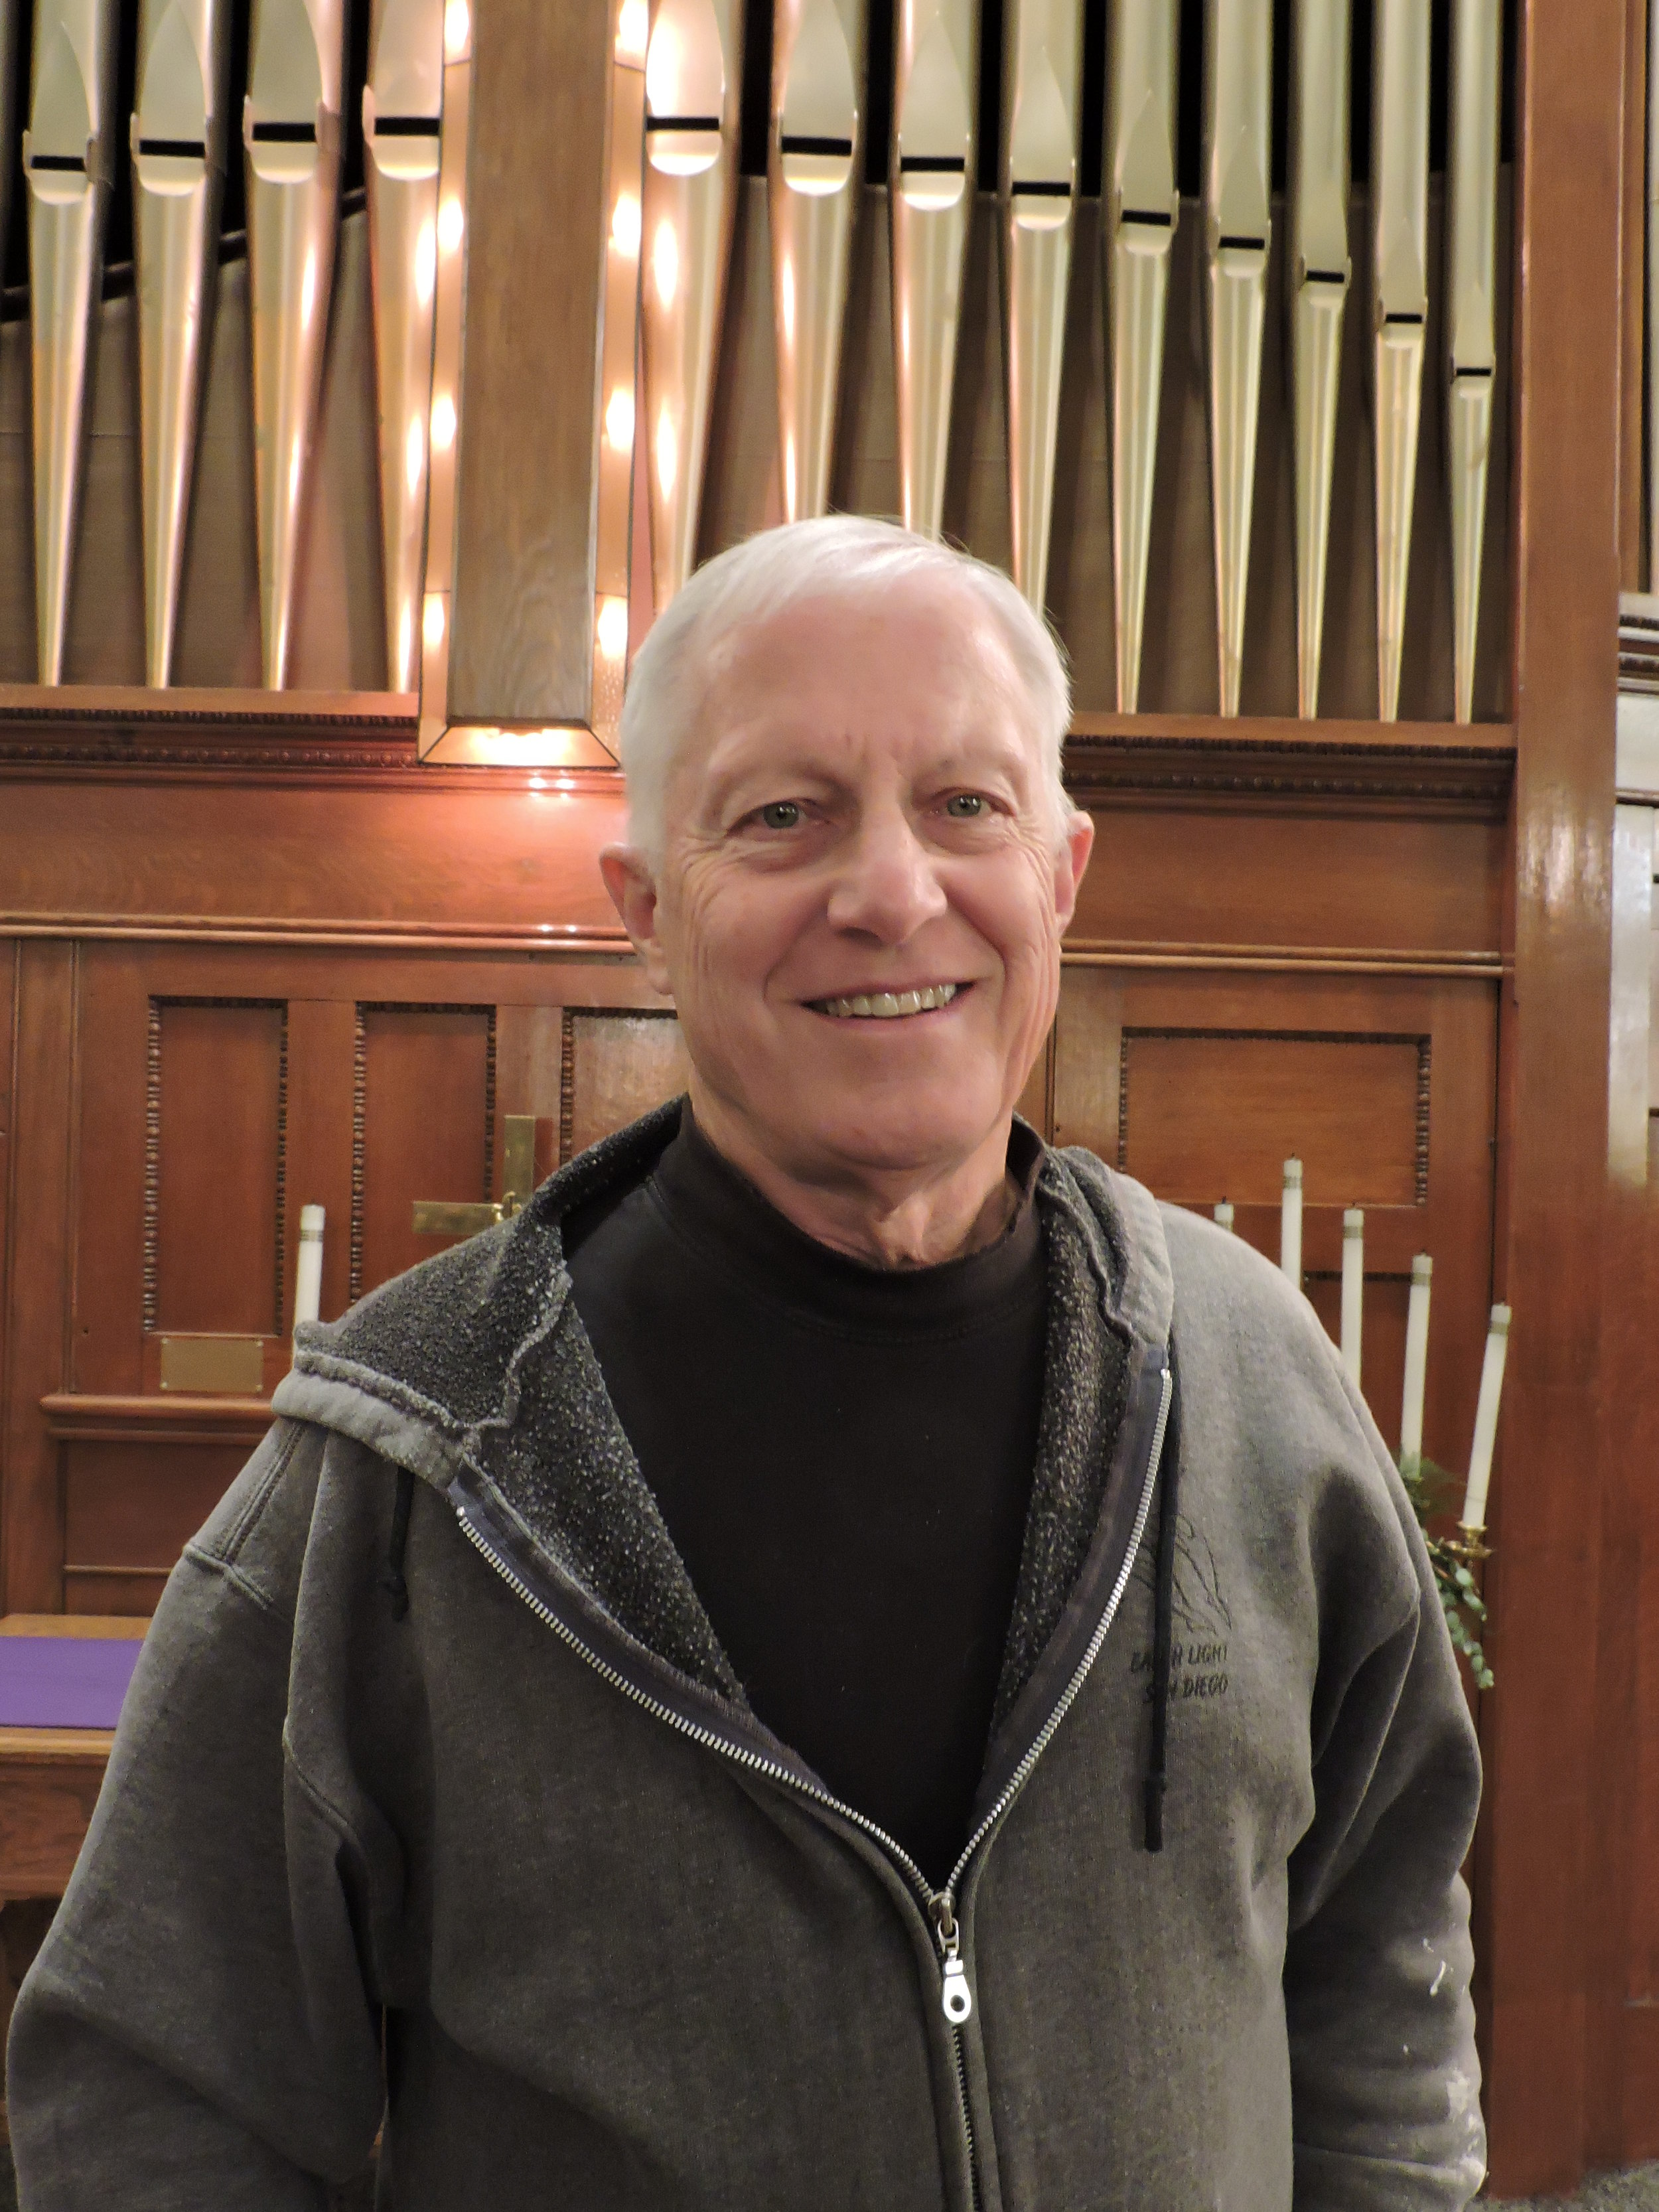 John Stiehl, President - hn Stiehl, PresidentBA (Physics), MBA (Technology Management)30 years engineering and project management, 12 years consulting in business and mfg. technology, 22 years restoring historic buildingsCofounder: Ranch of Hope and Historic Church ConservancyBoard President: Pueblo Loco and Railway History Society,Pueblo Habitat for Humanity.12 of 18 grant requests written have been funded.Buildings such as 701 Macon Ave. were conceived and built during our country's zenith of caring and craftsmanship. They deserve our care, respect, and support as their equivalent will never again be duplicated. Our children and theirs need this perspective on who we are, have been, and the level of character that provided the foundation and realization of their dreams to serve God and country.